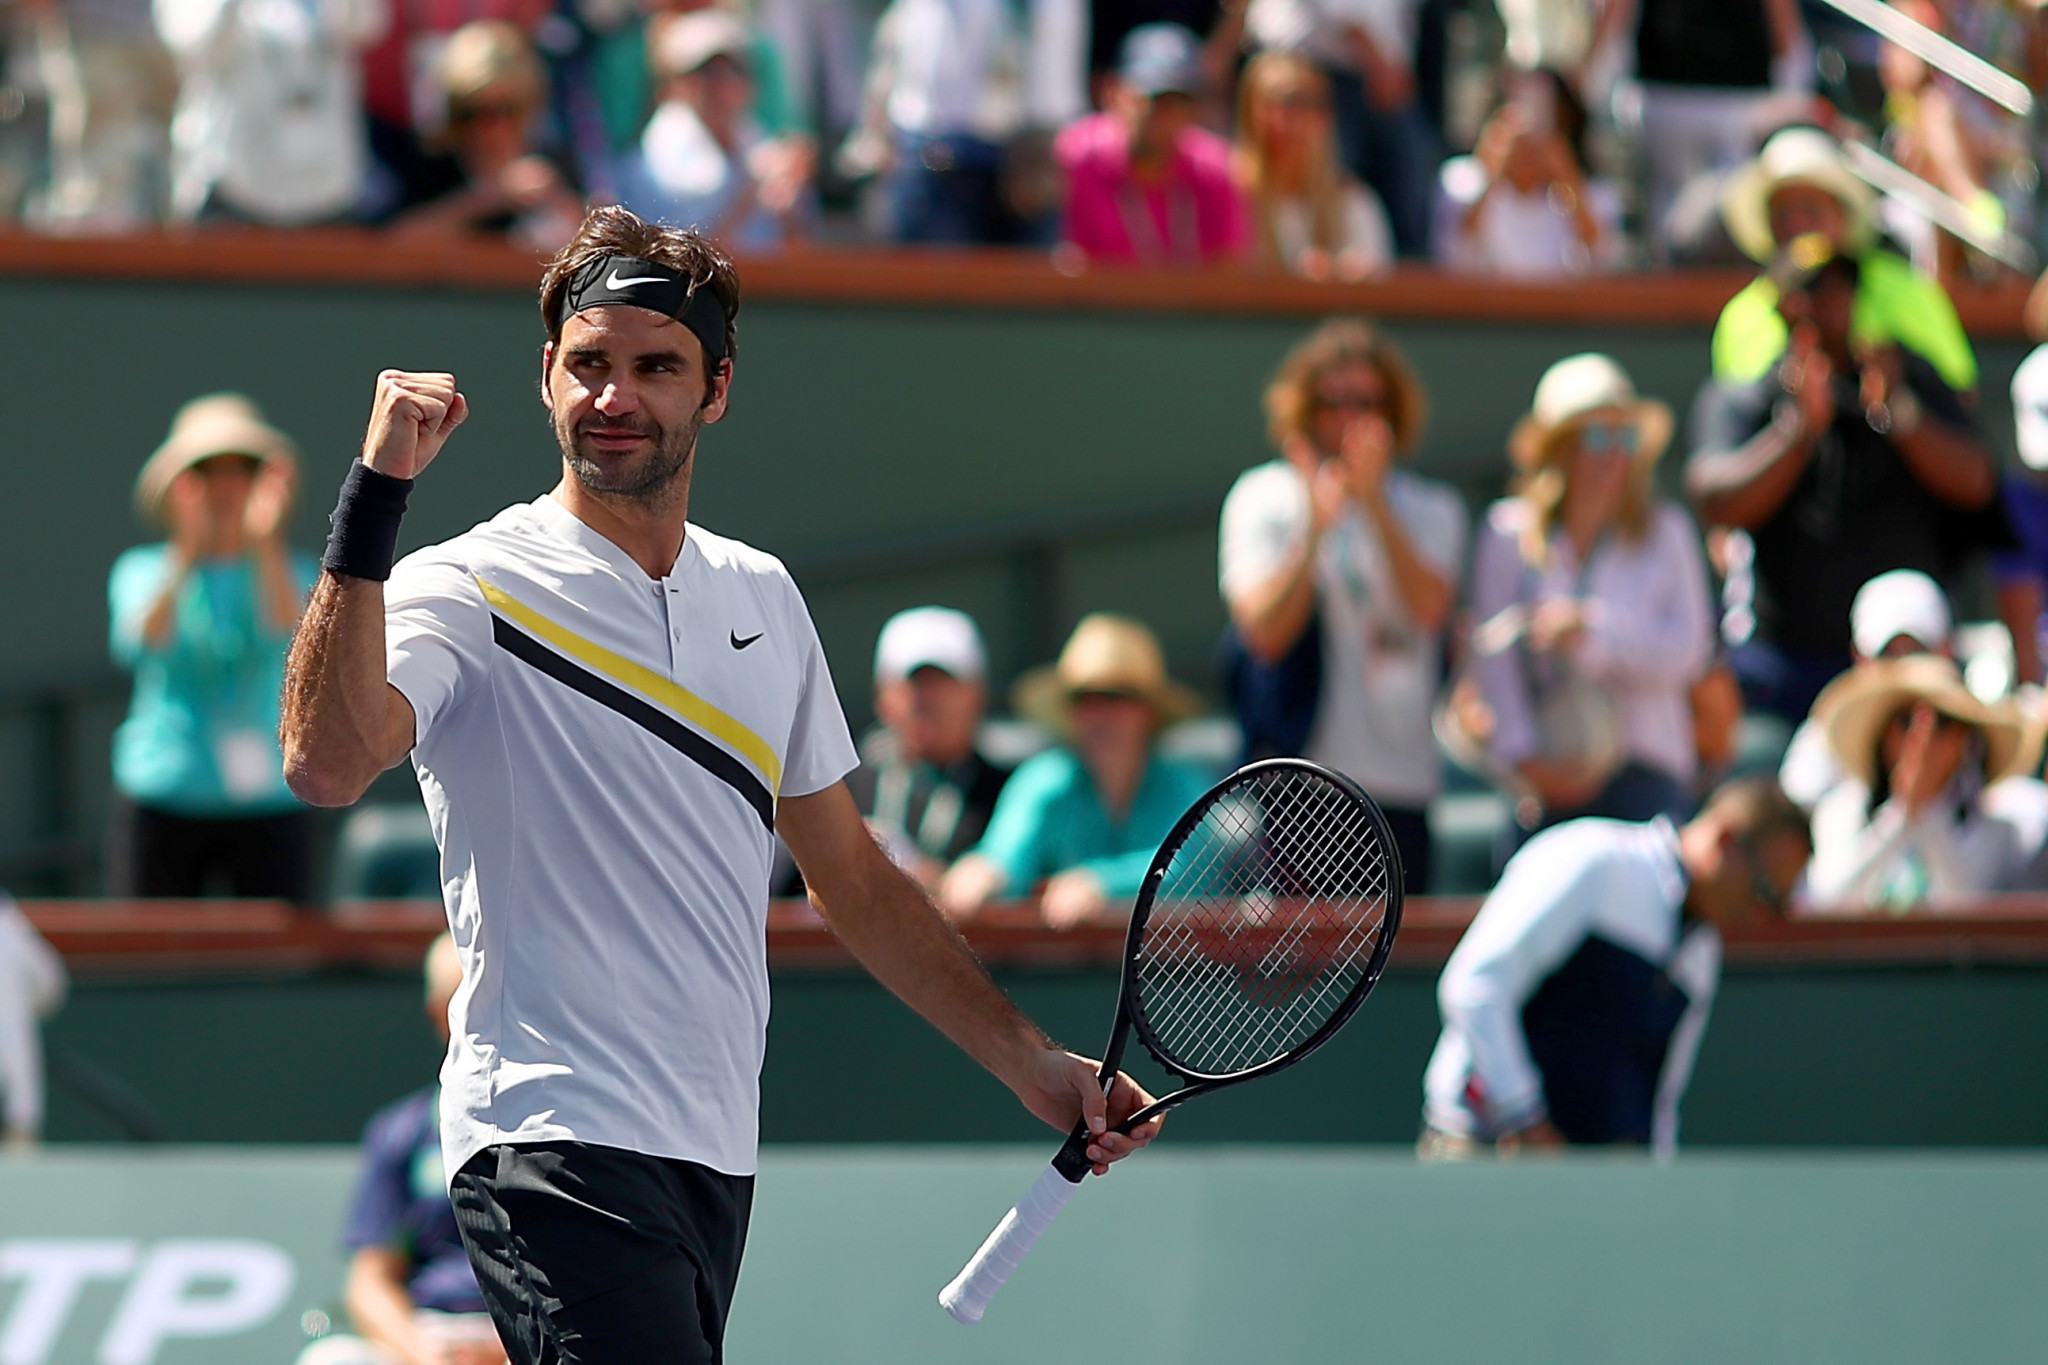 Federer confirms best-ever start to the season to reach Indian Wells final